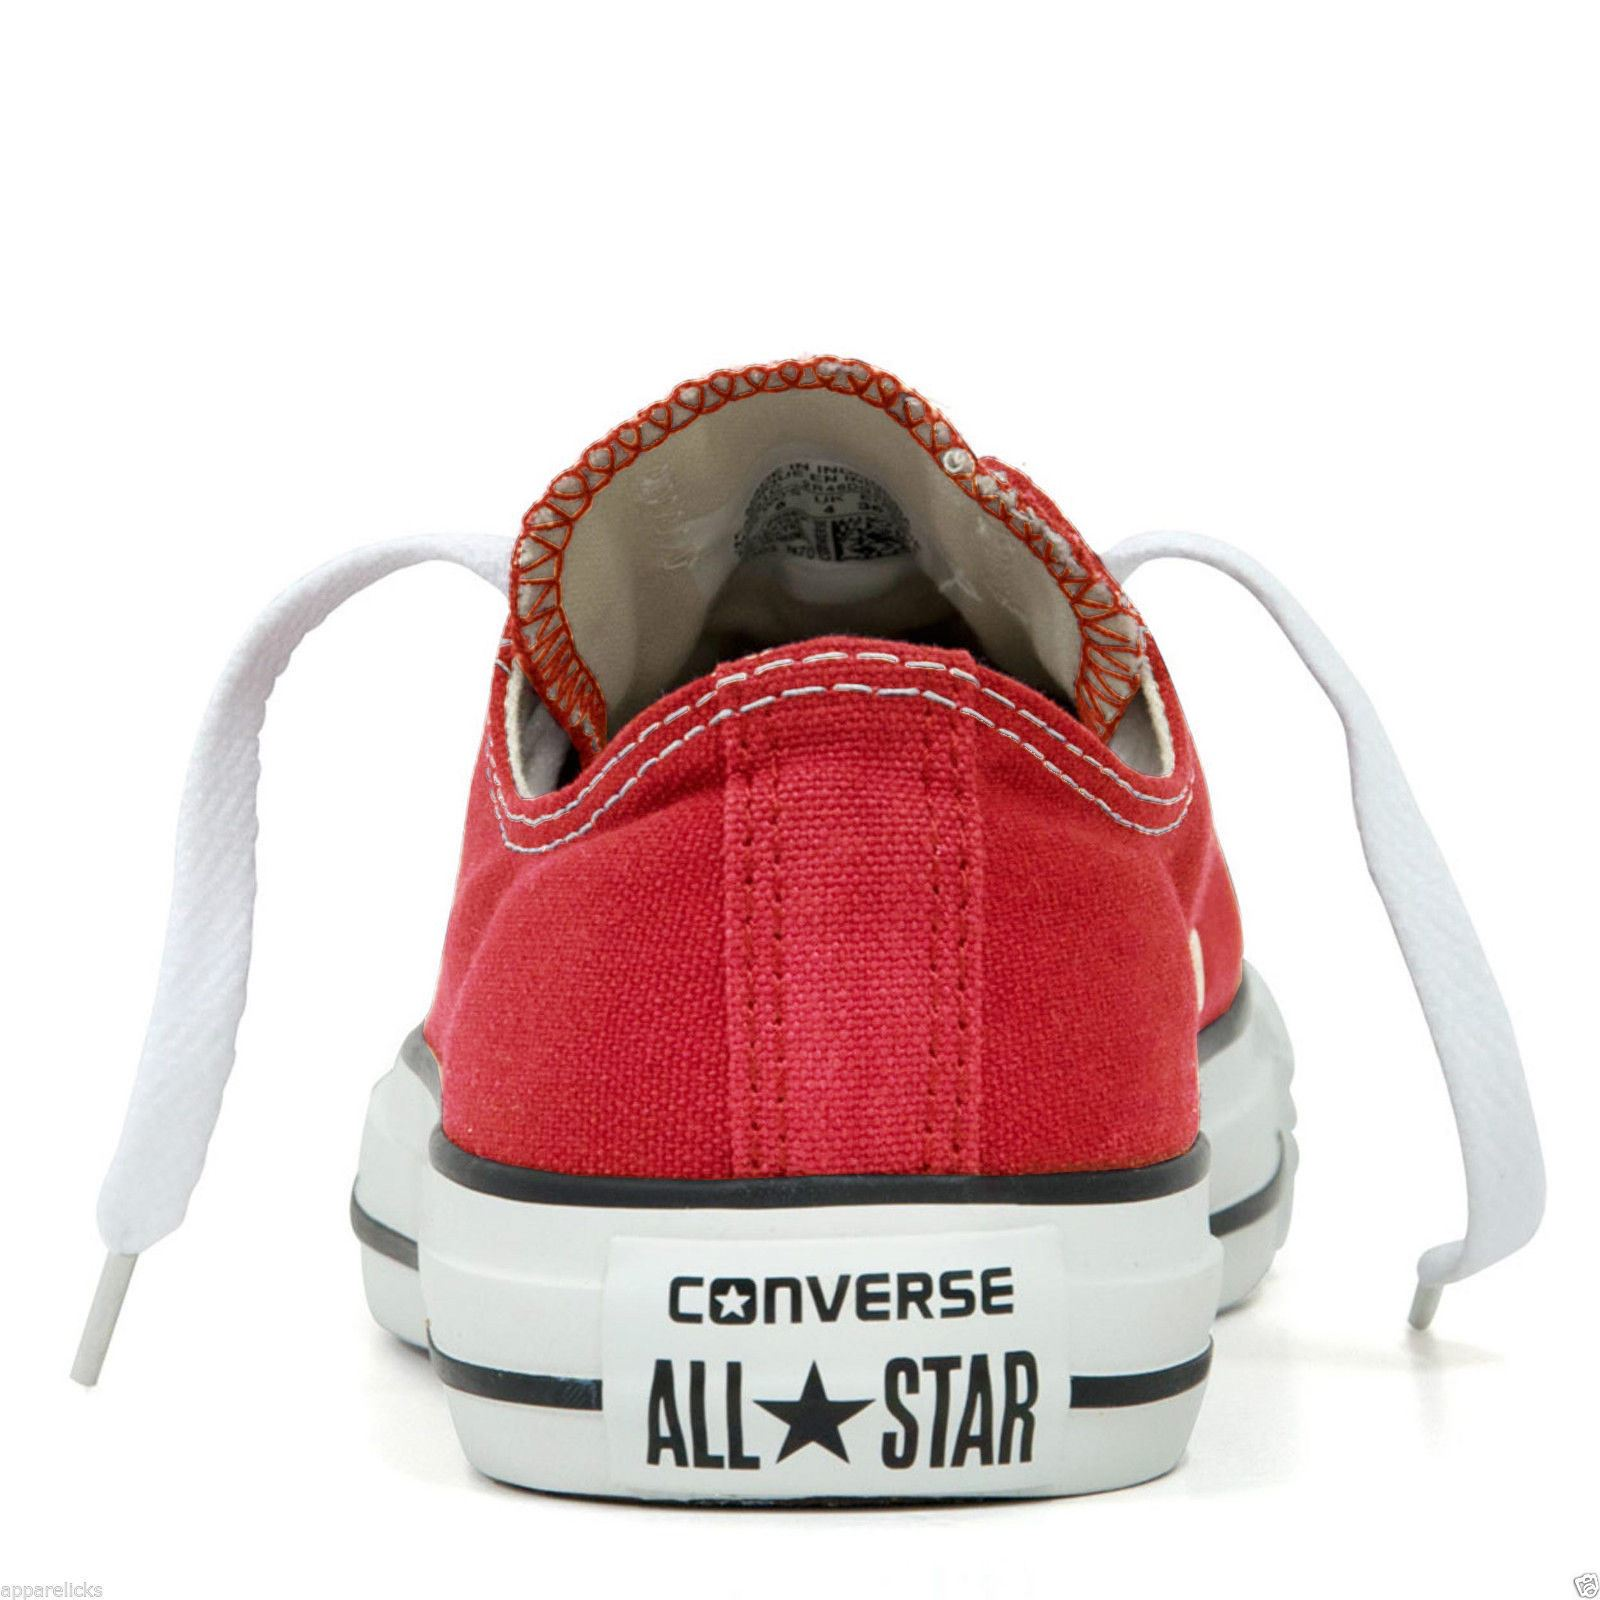 Converse-All-Star-Unisex-Chuck-Taylor-New-Mens-Womens-Low-Tops-Trainers-Pumps thumbnail 24